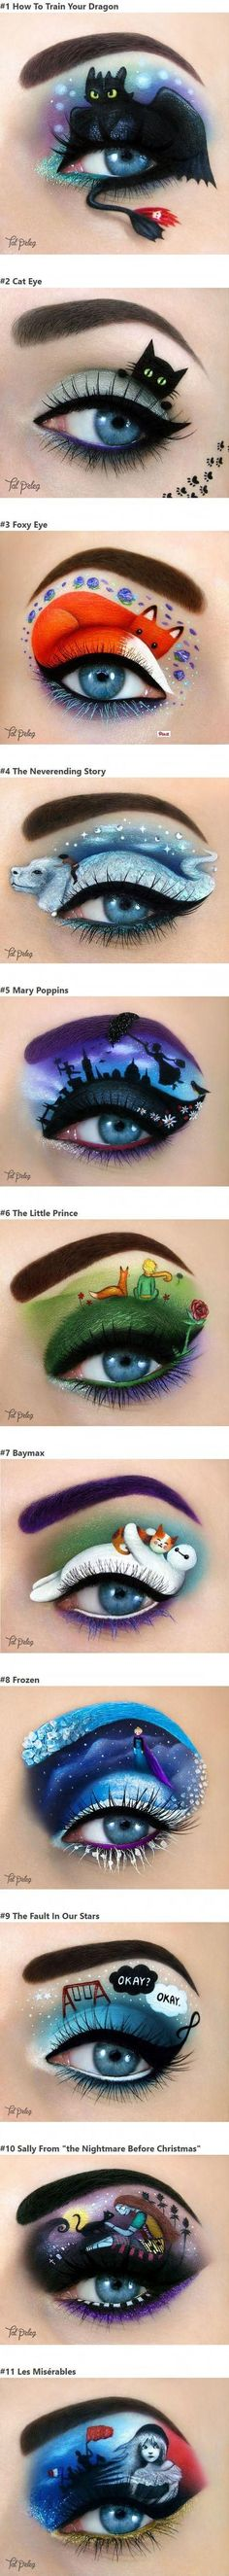 Artist Uses Her Eyes To Create Amazing Fairy Tale Art (maquillaje halloween gata) Eye Makeup Art, Cat Makeup, Eye Art, Beauty Makeup, Make Up Art, Eye Make Up, Disney Makeup, Fairytale Art, Makeup Designs